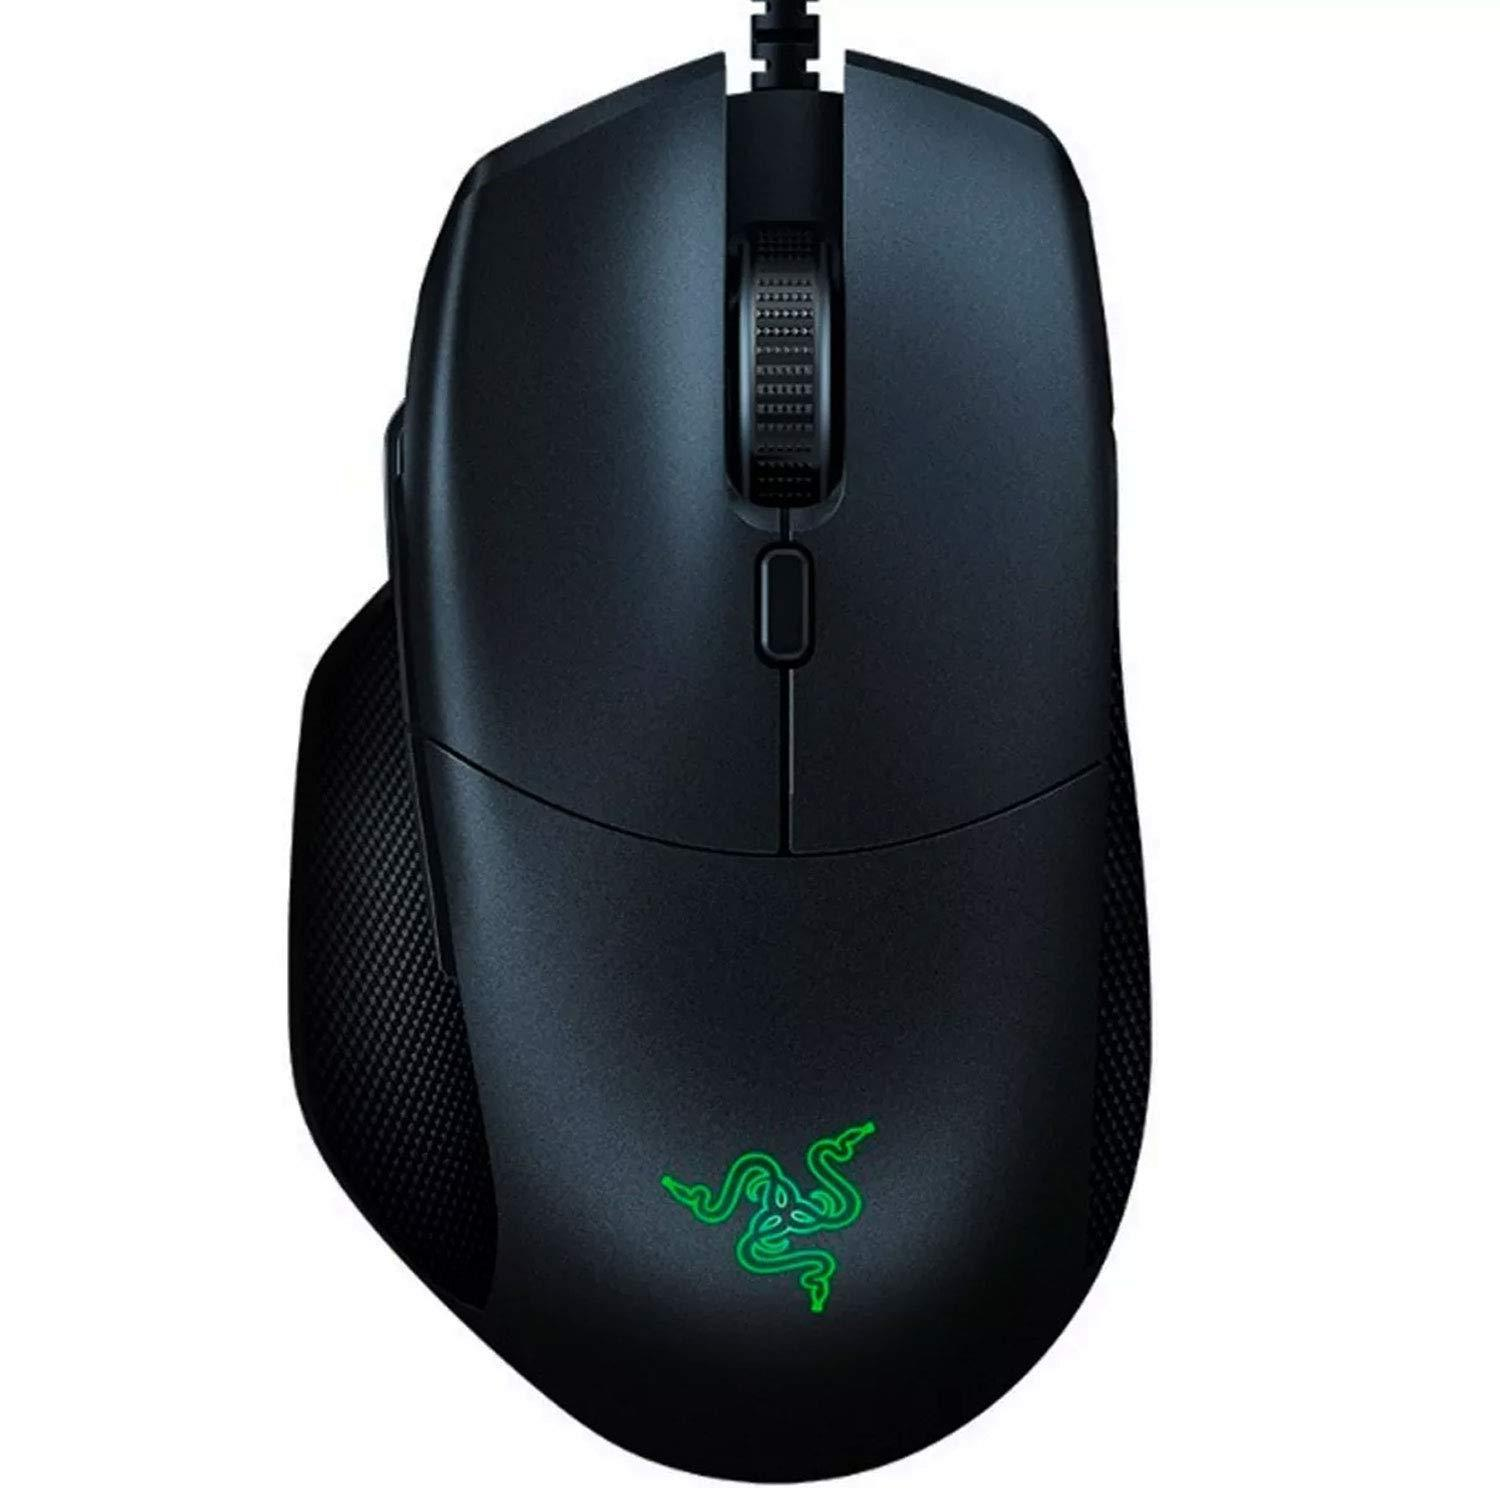 Razer Basilisk Essential Gaming Mouse - Store 974 | ستور ٩٧٤